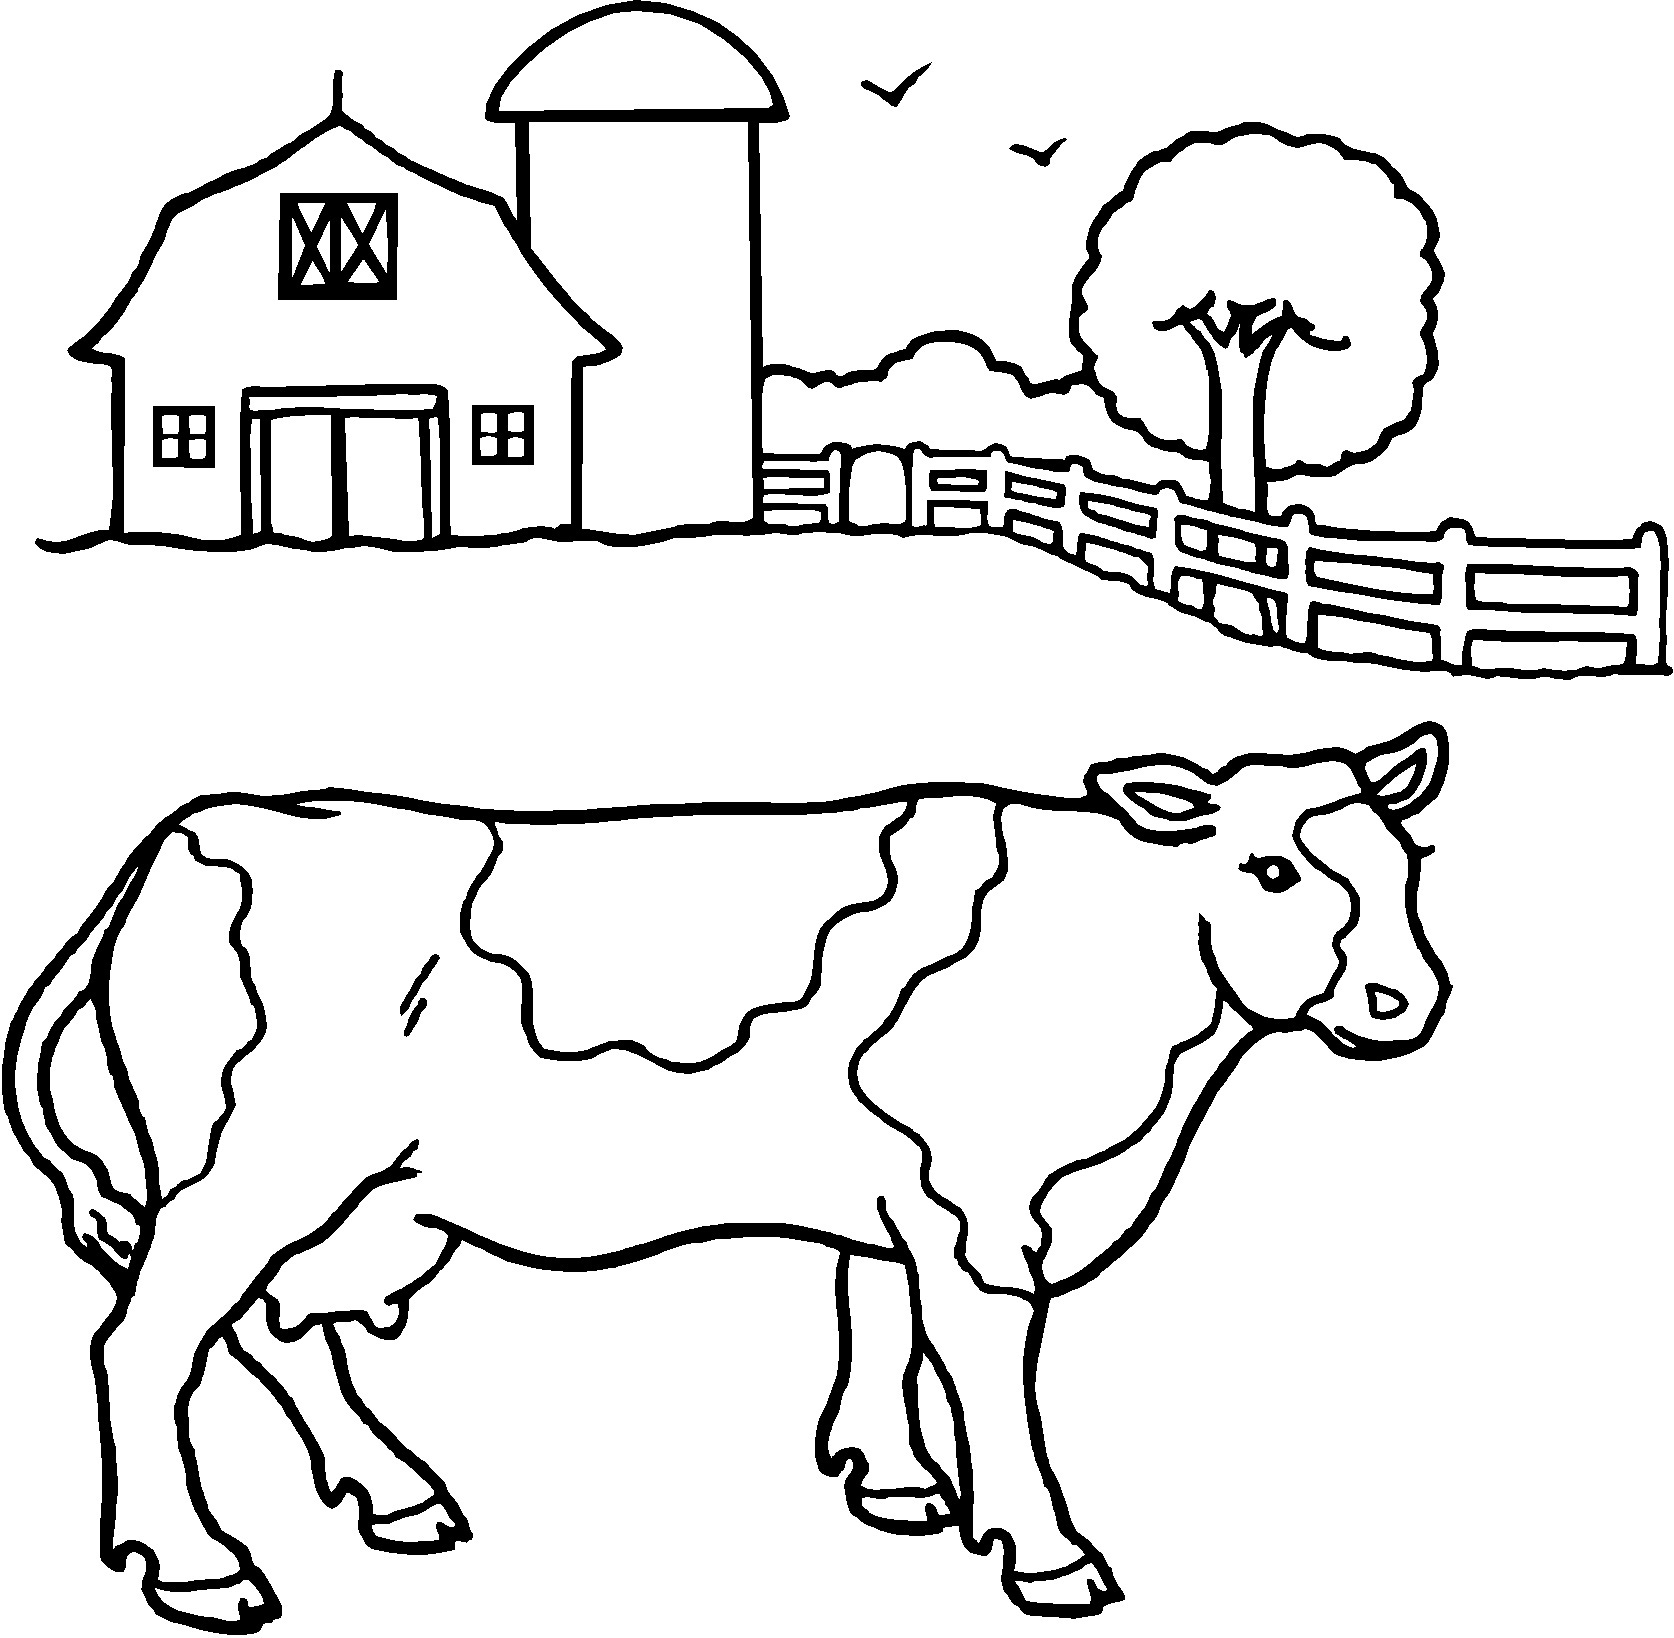 cow coloring pages print - photo#23